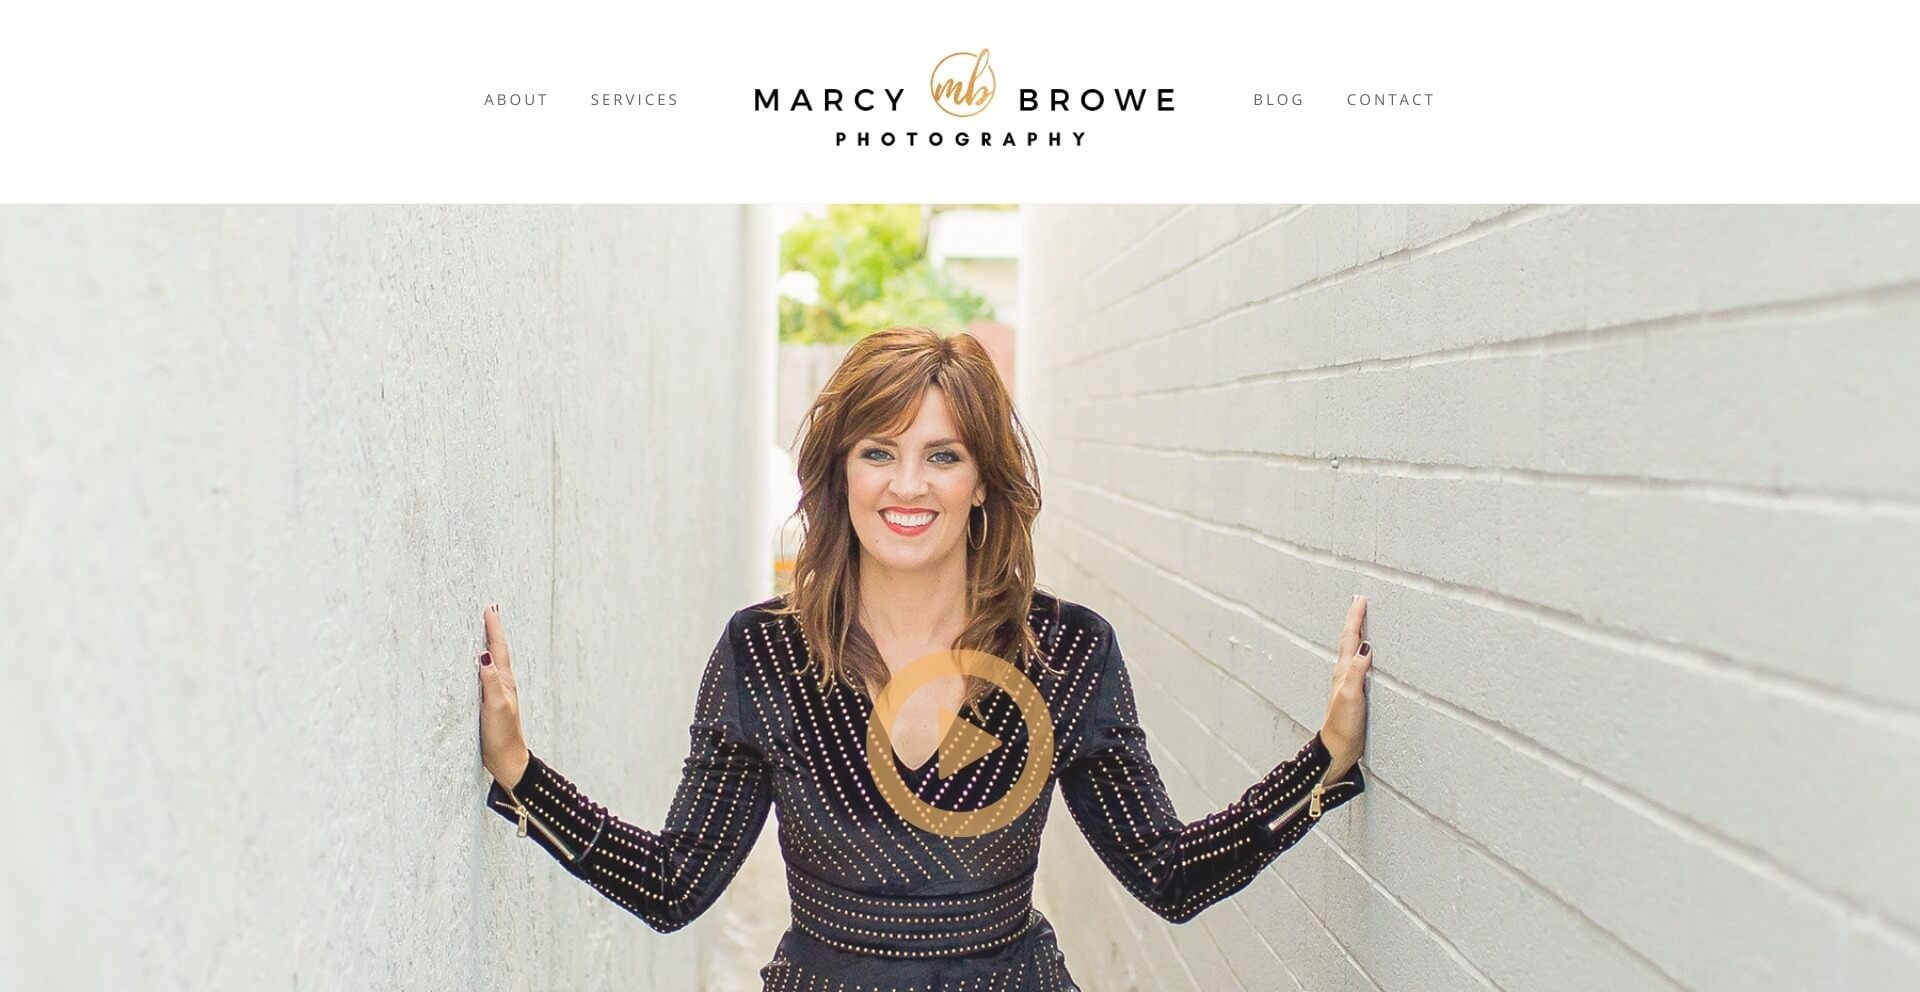 Marcy Browe Photography